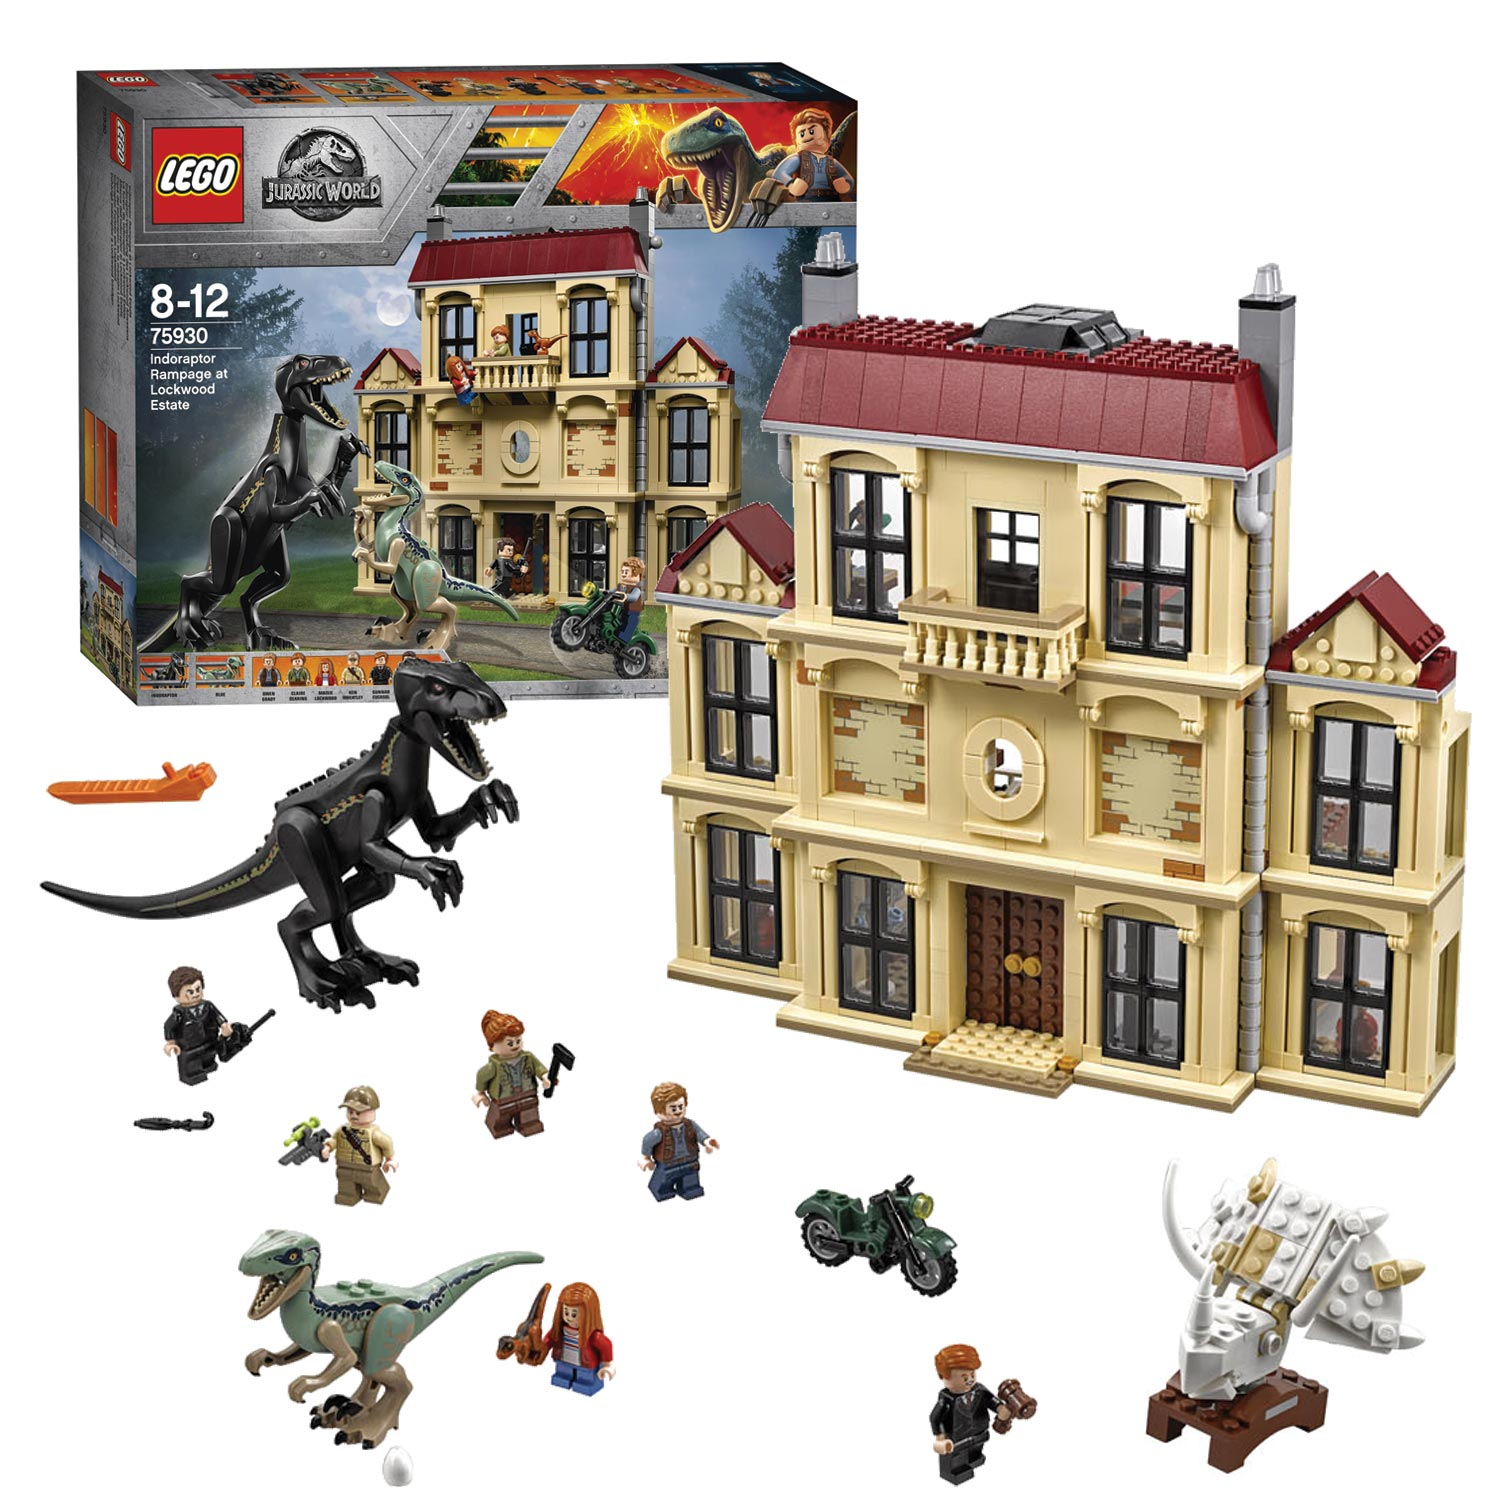 LEGO Jurassic World 75930 Indoraptorchaos bij Lockwood Estat